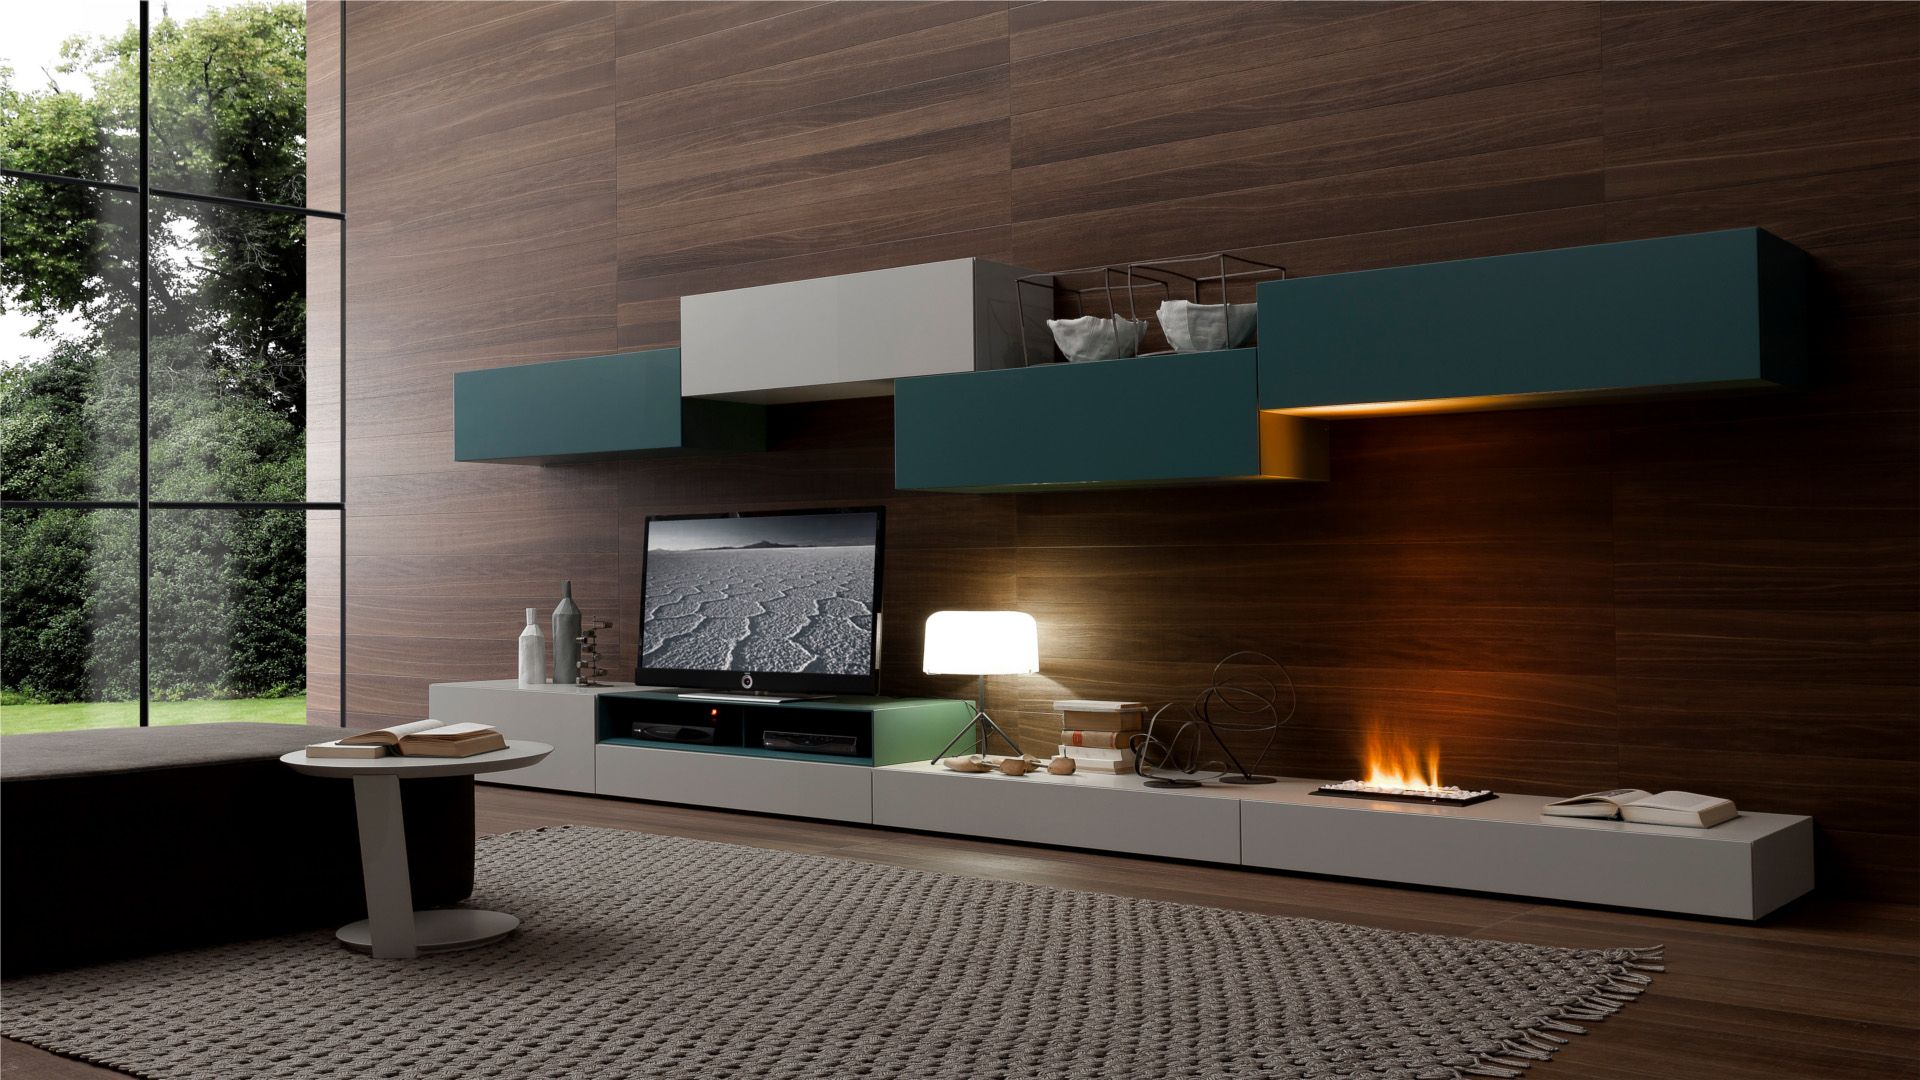 cozy rooms design with a modern fireplace ideas interior fireplace awesome indoor floating custom shelves low white wooden tv cabinet dark wood wall panels - Tv Wall Panels Designs